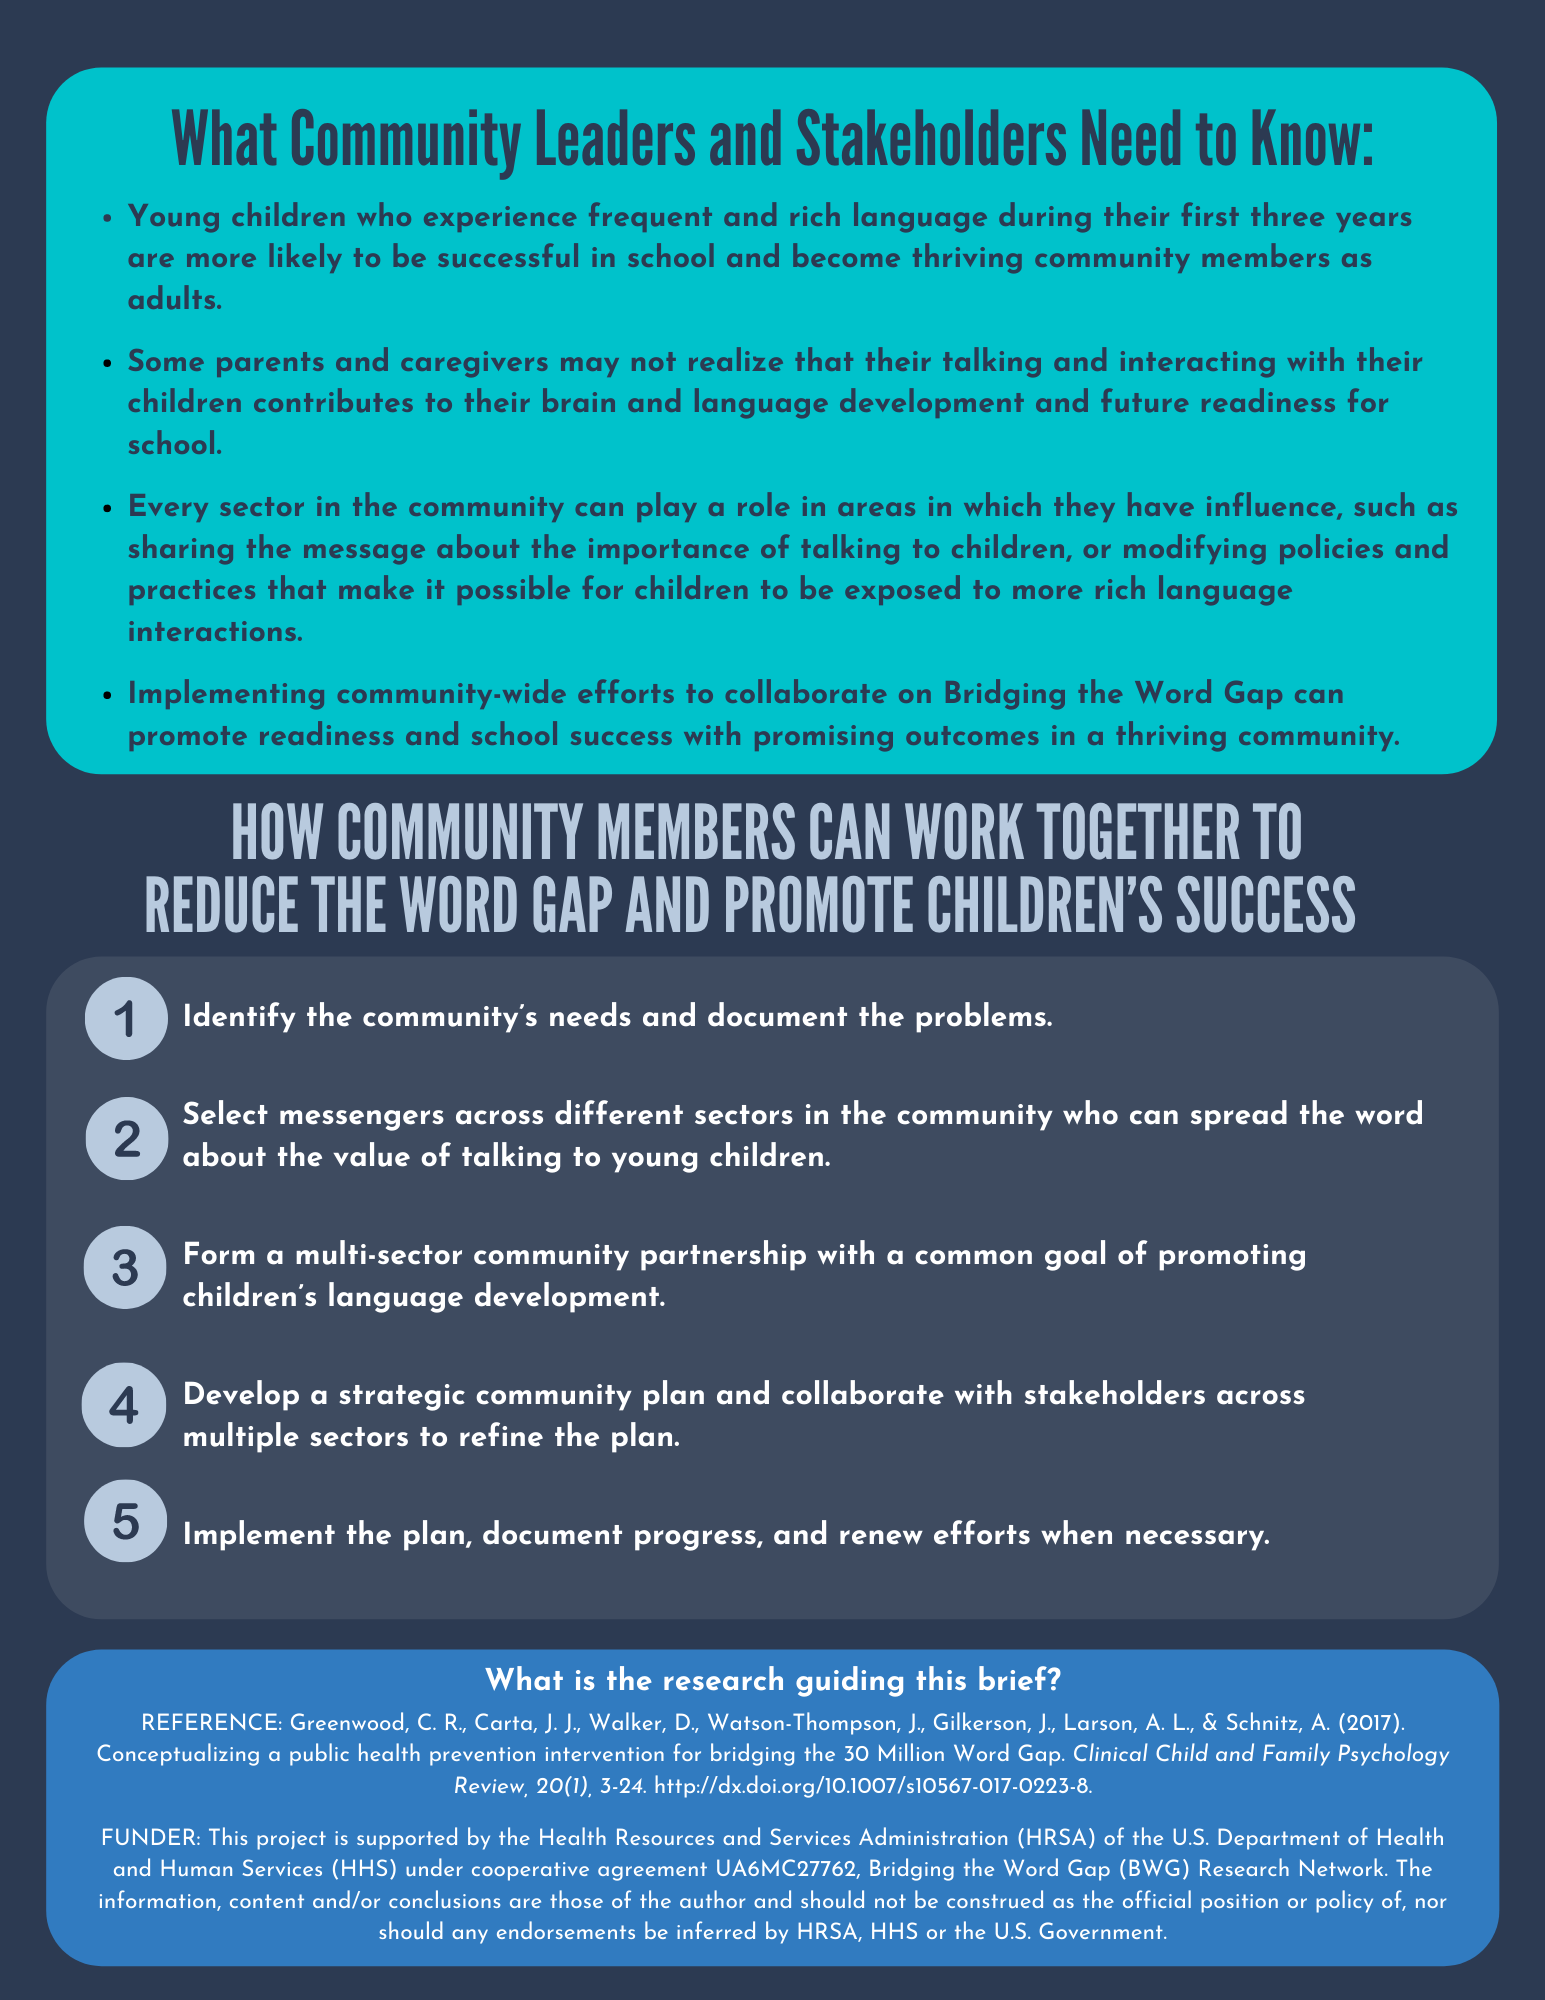 This is the 2nd page of the bridging the word gap community action plan